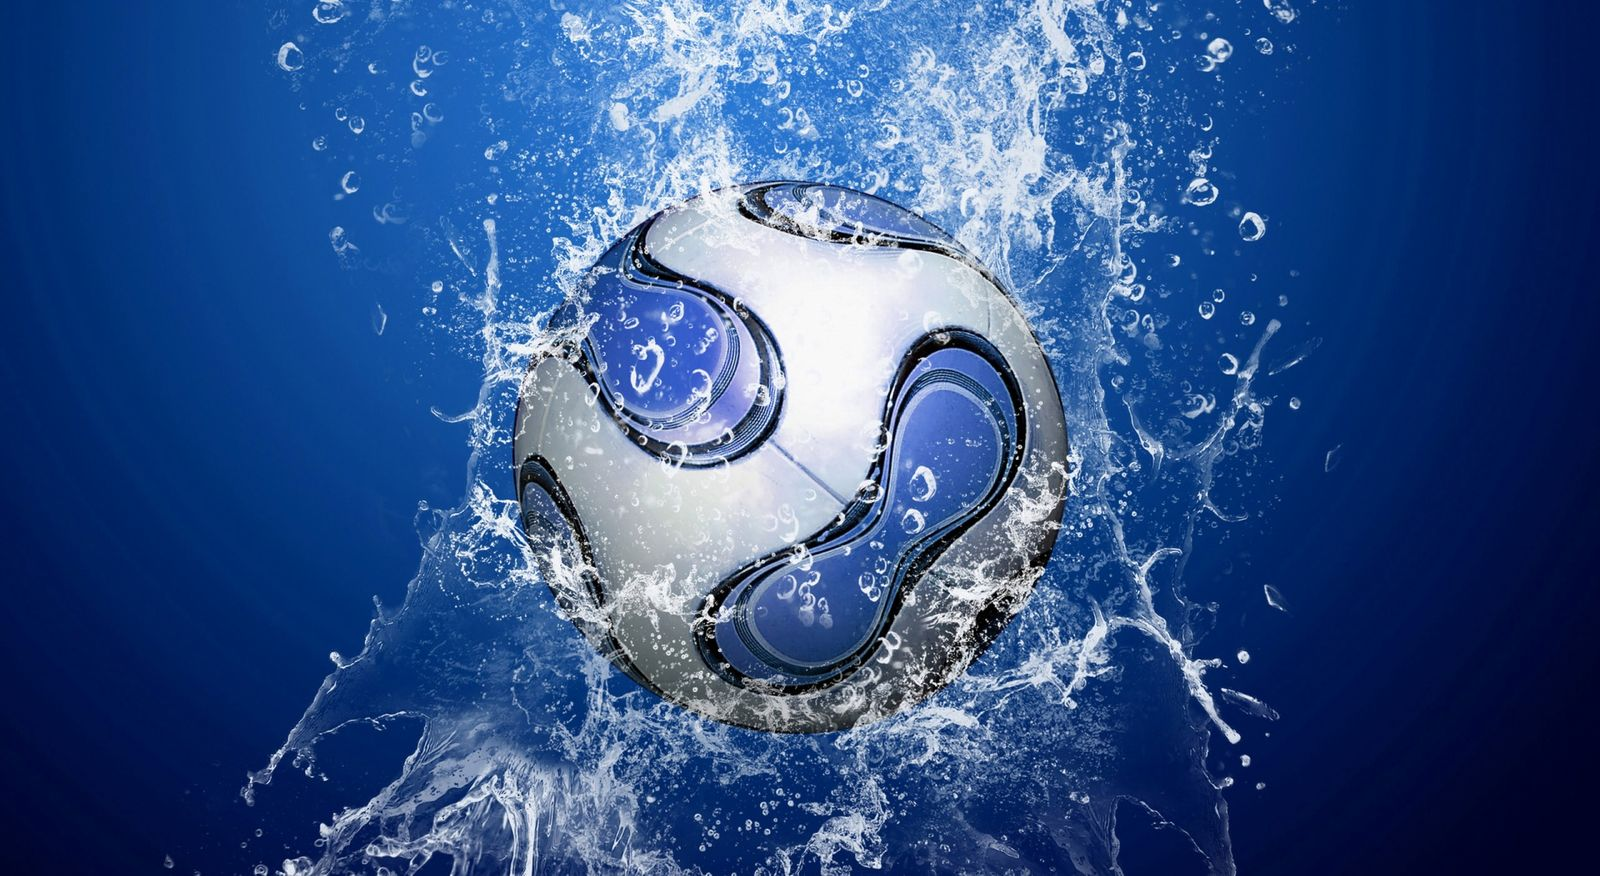 Blue football wallpaper